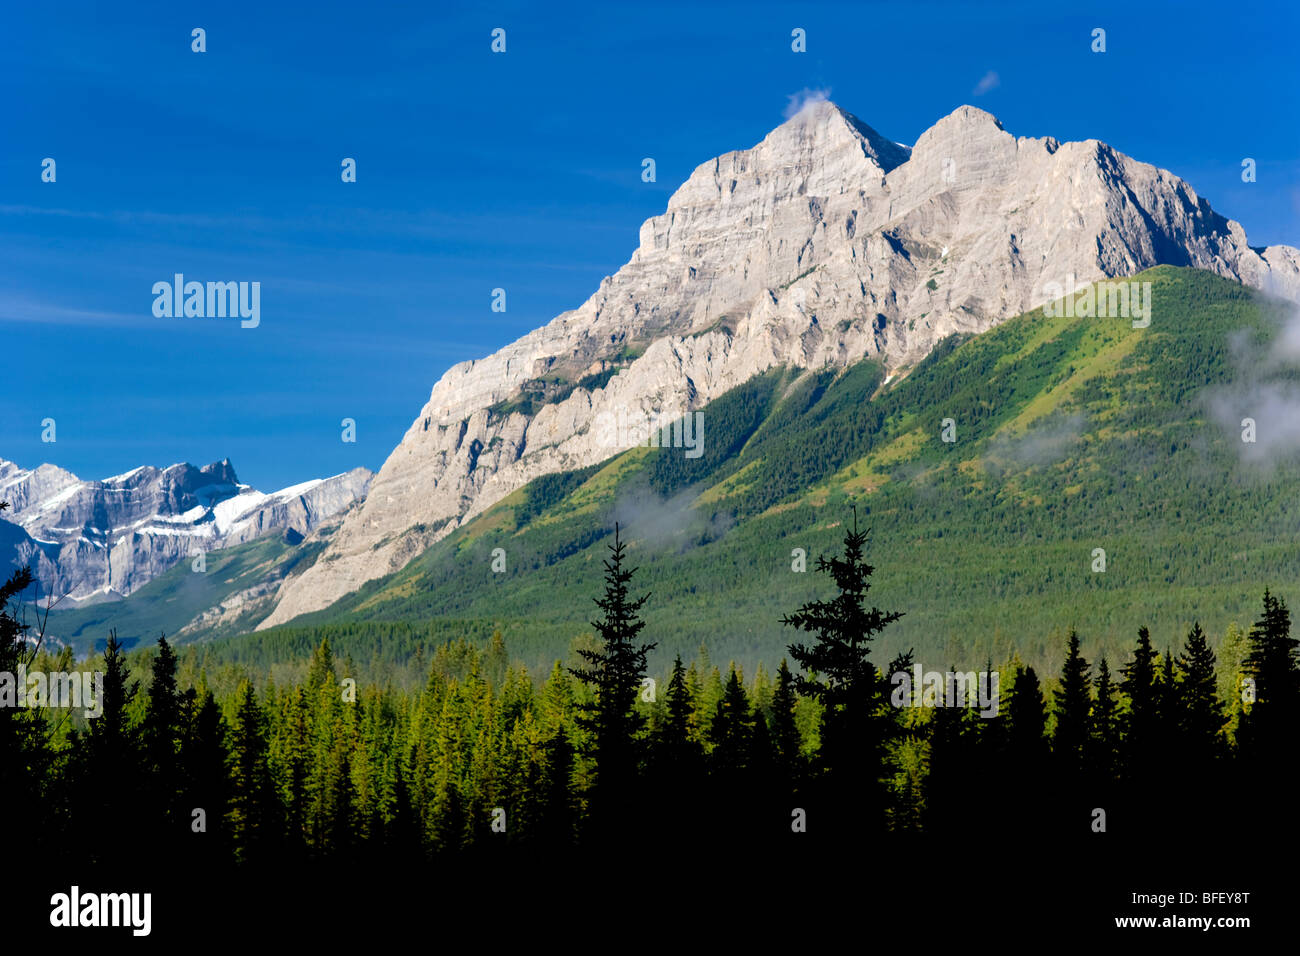 Kananaskis Provincial Park, Alberta, Canada, trees, forest, Mountain, Rockies, Geological formation - Stock Image